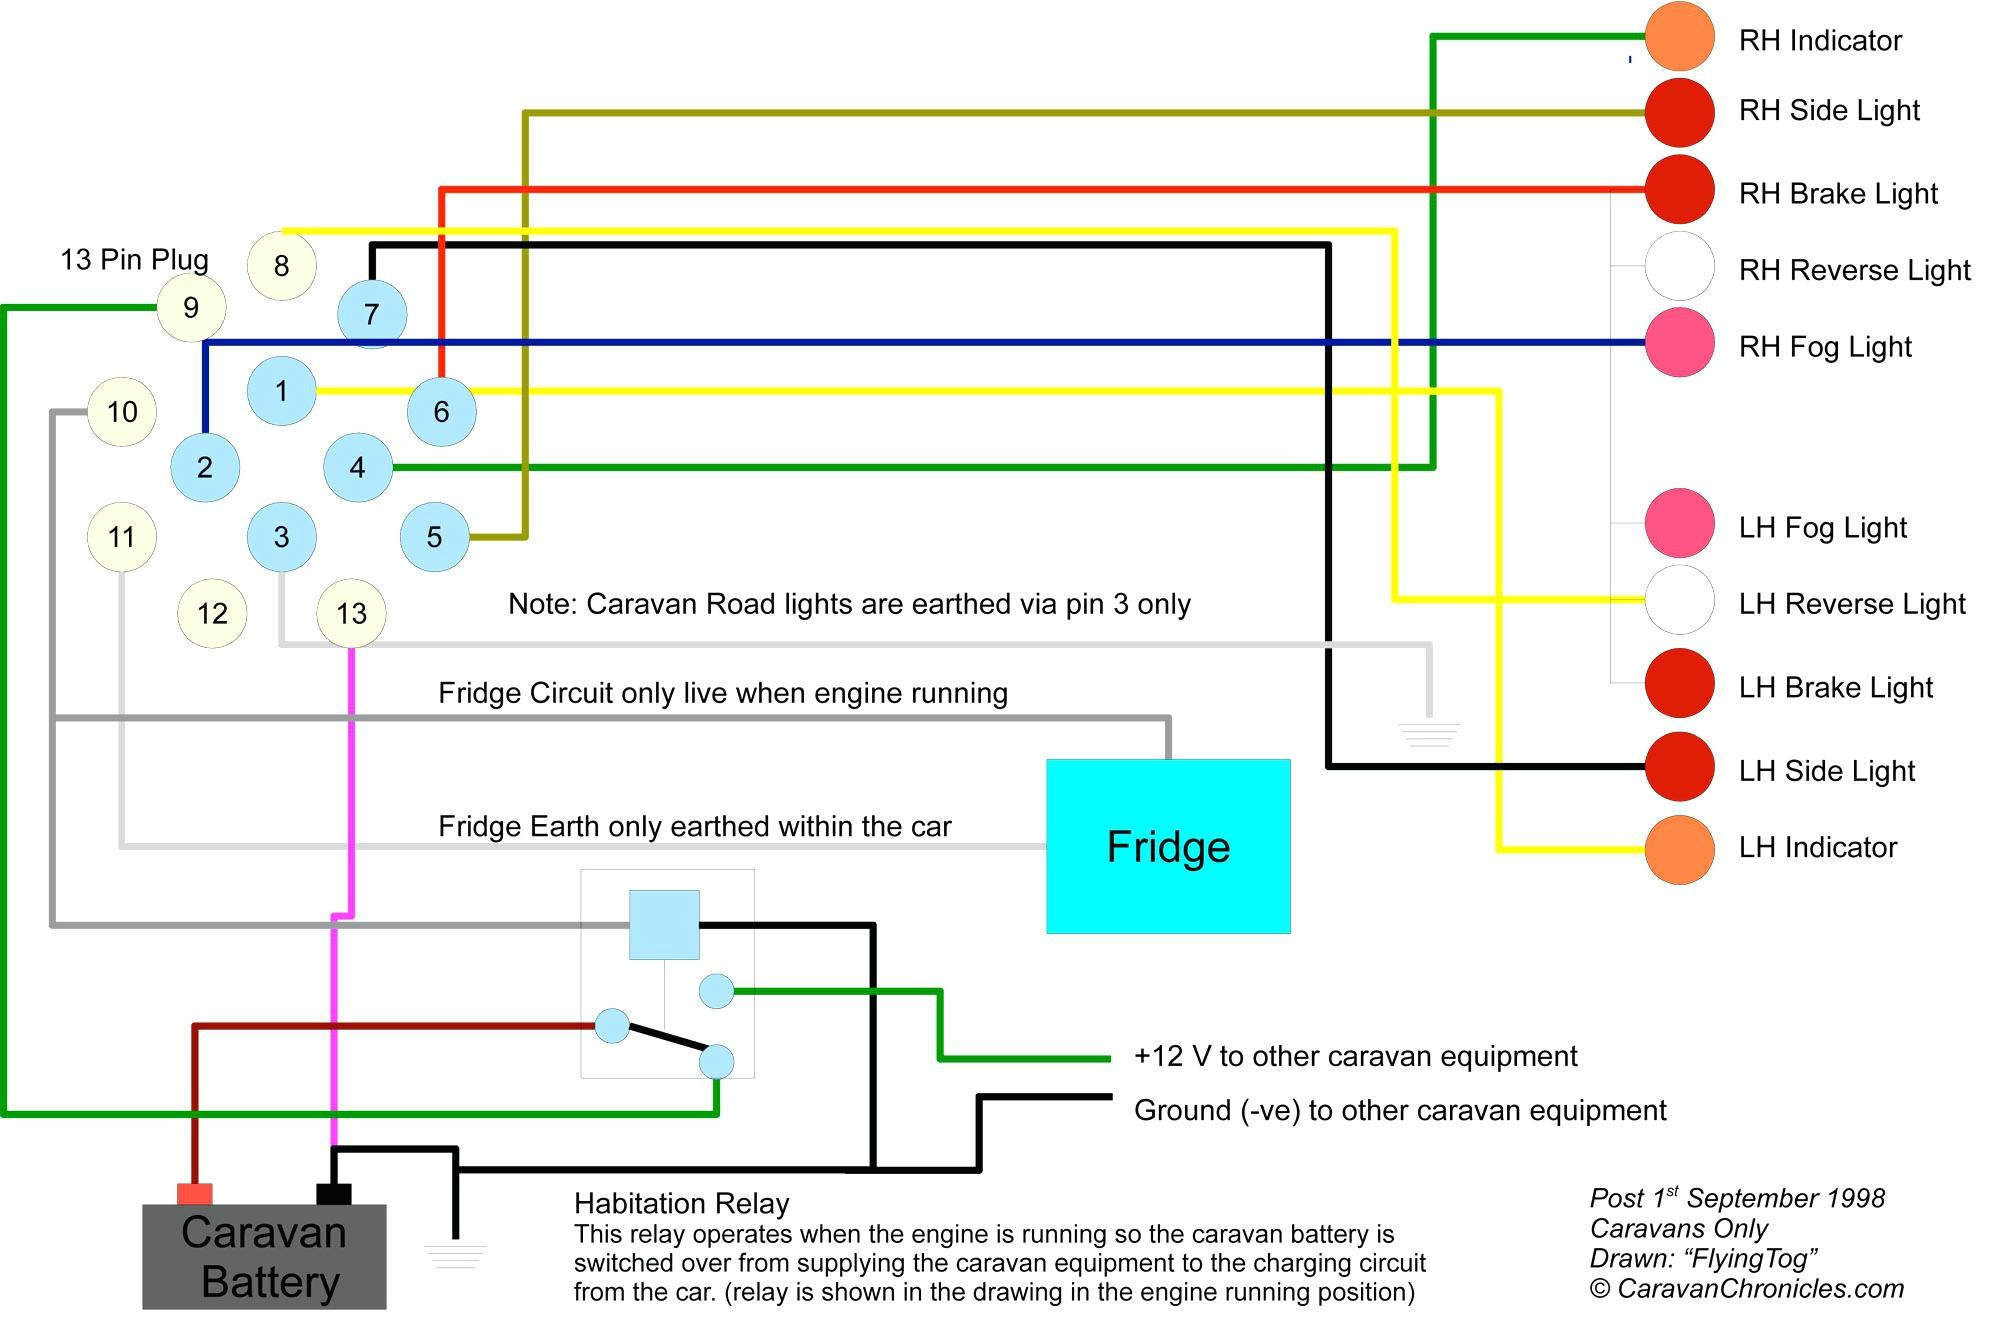 Dodge Caravan Tail Light Wiring Diagram 2014 Cummins 6 7 Ram Trailer Hitch Nickfayosub Of